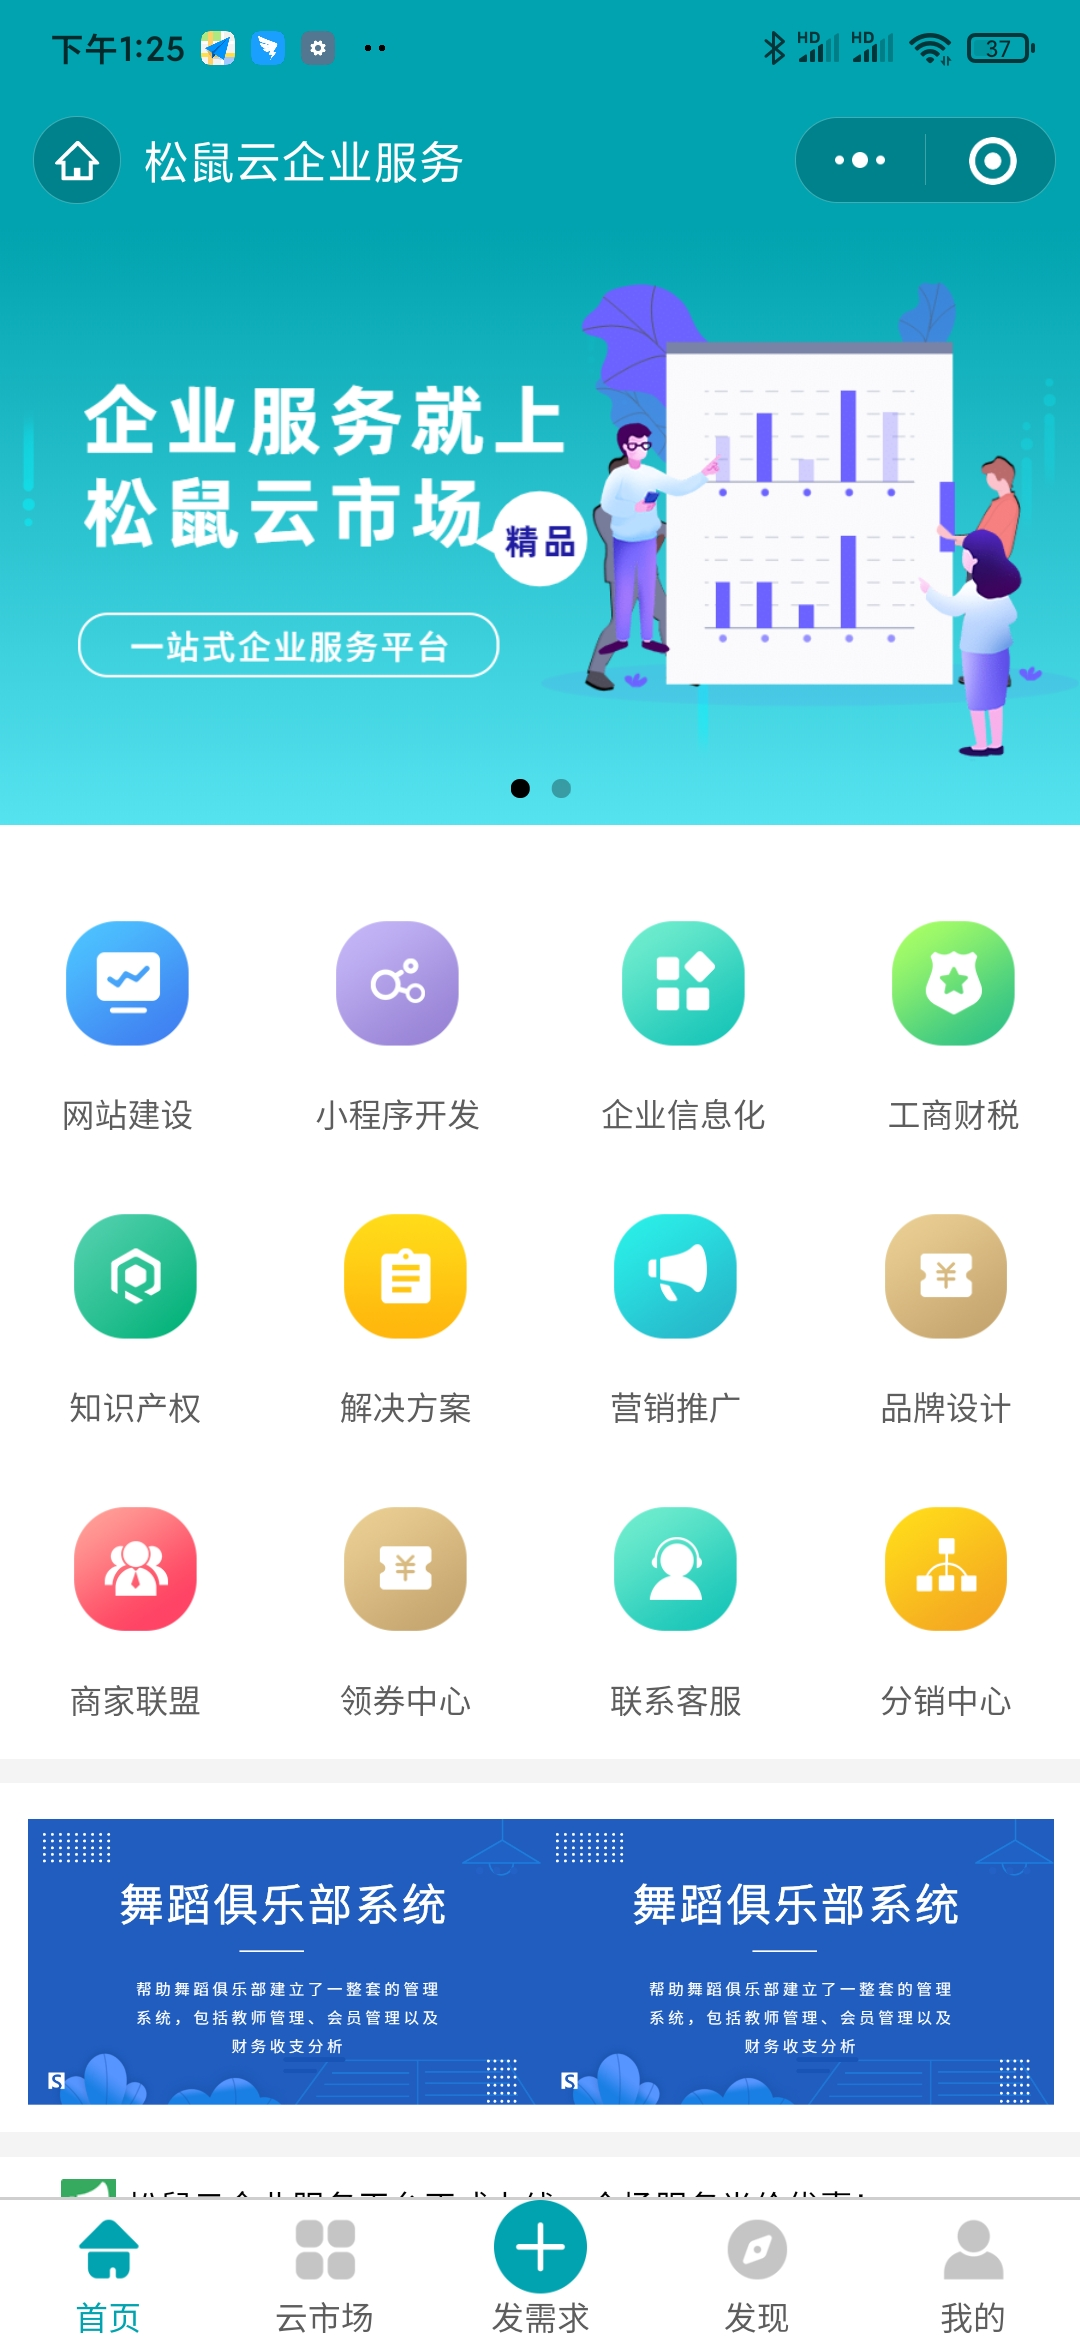 Screenshot_2020-05-19-13-25-23-671_com.tencent.mm